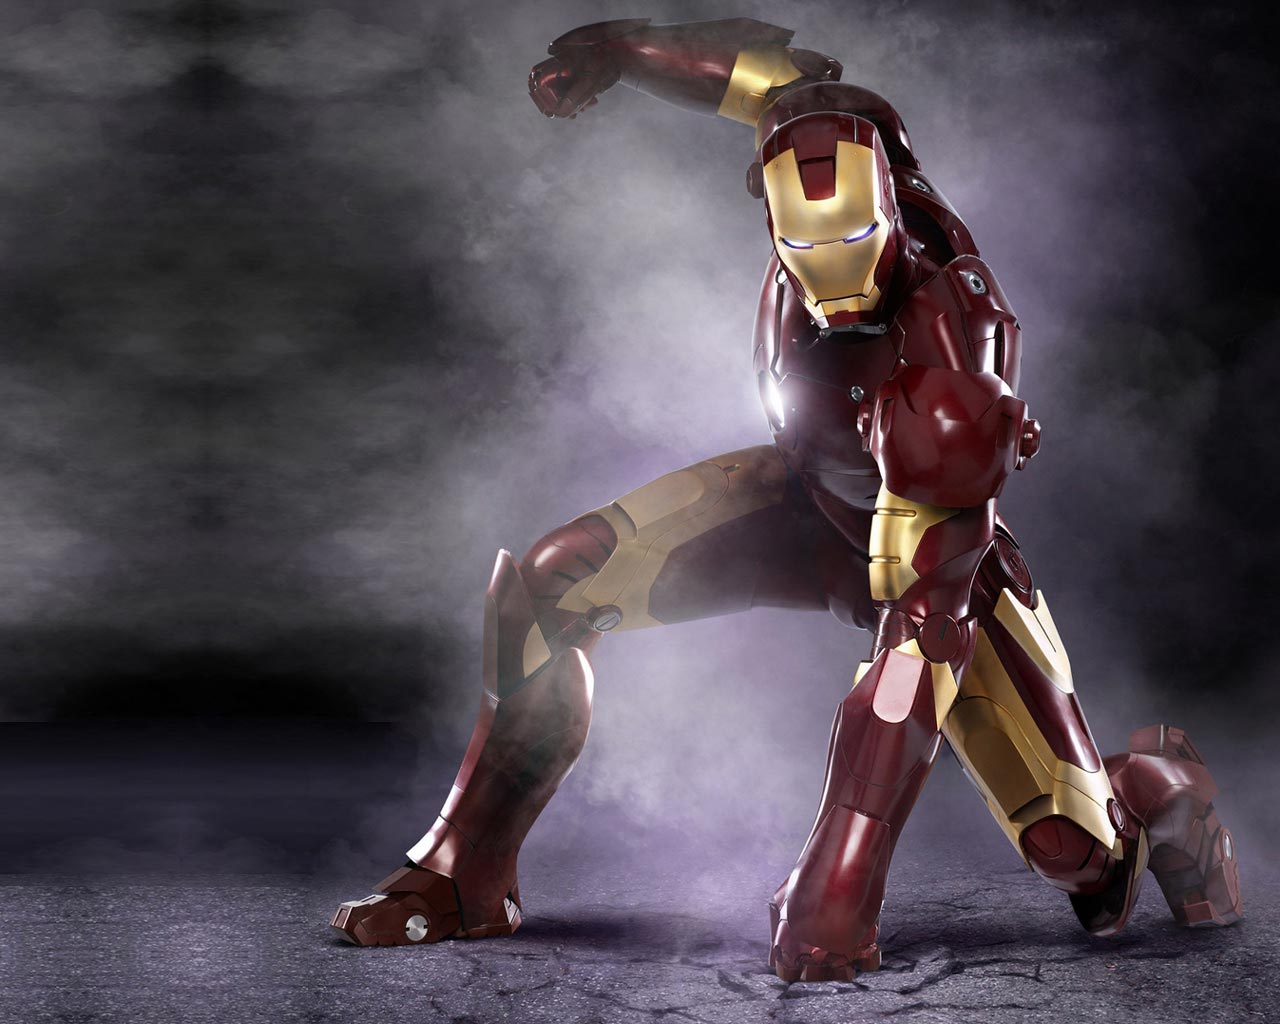 Iron Man Wallpapers: EVERY THING HD WALLPAPERS: Iron Man HD Wallpapers 2013